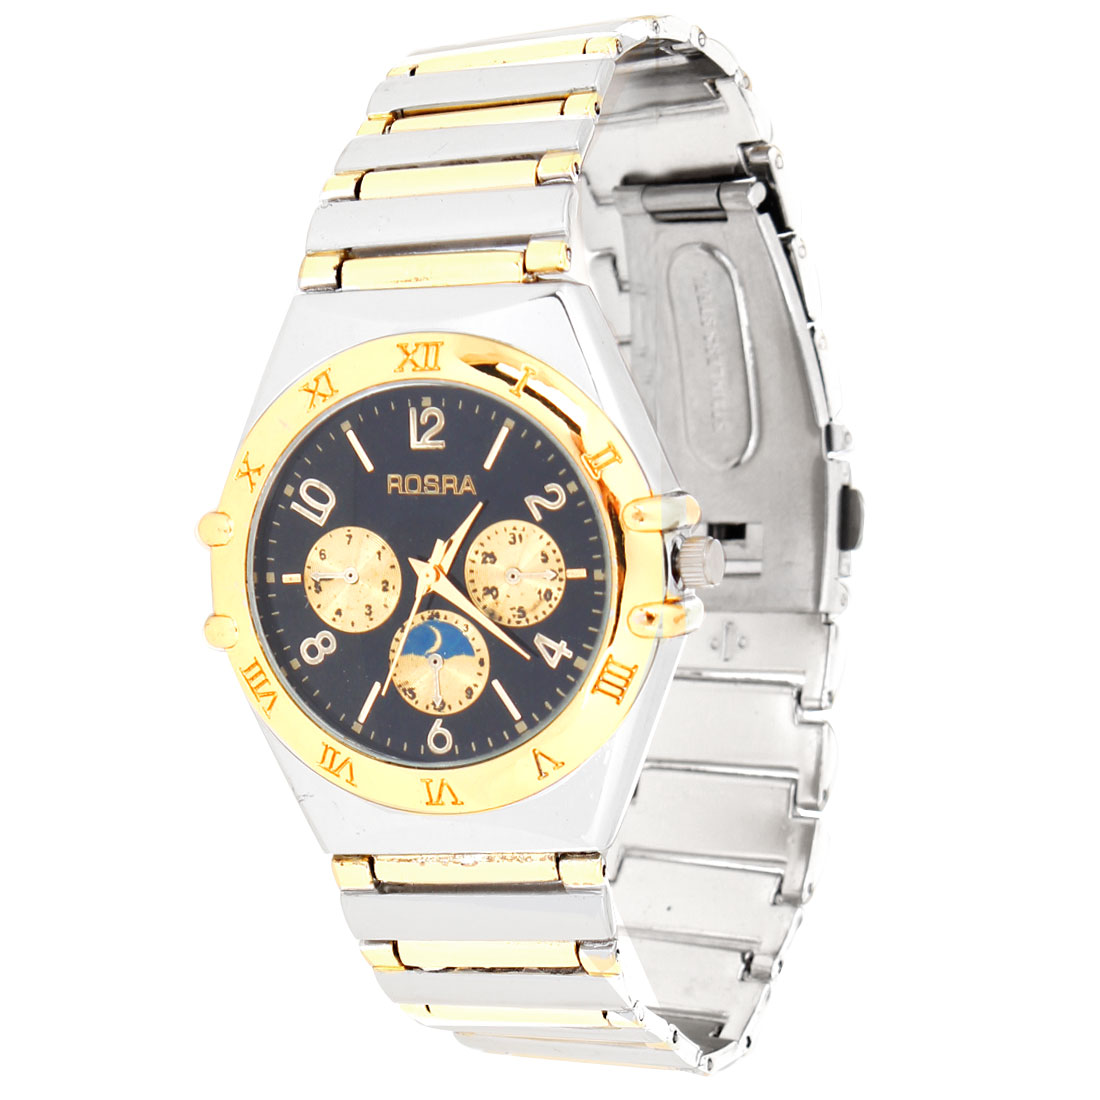 Black Round Dial Case Silver Gold Tone Textured Band Wrist Watch for Men